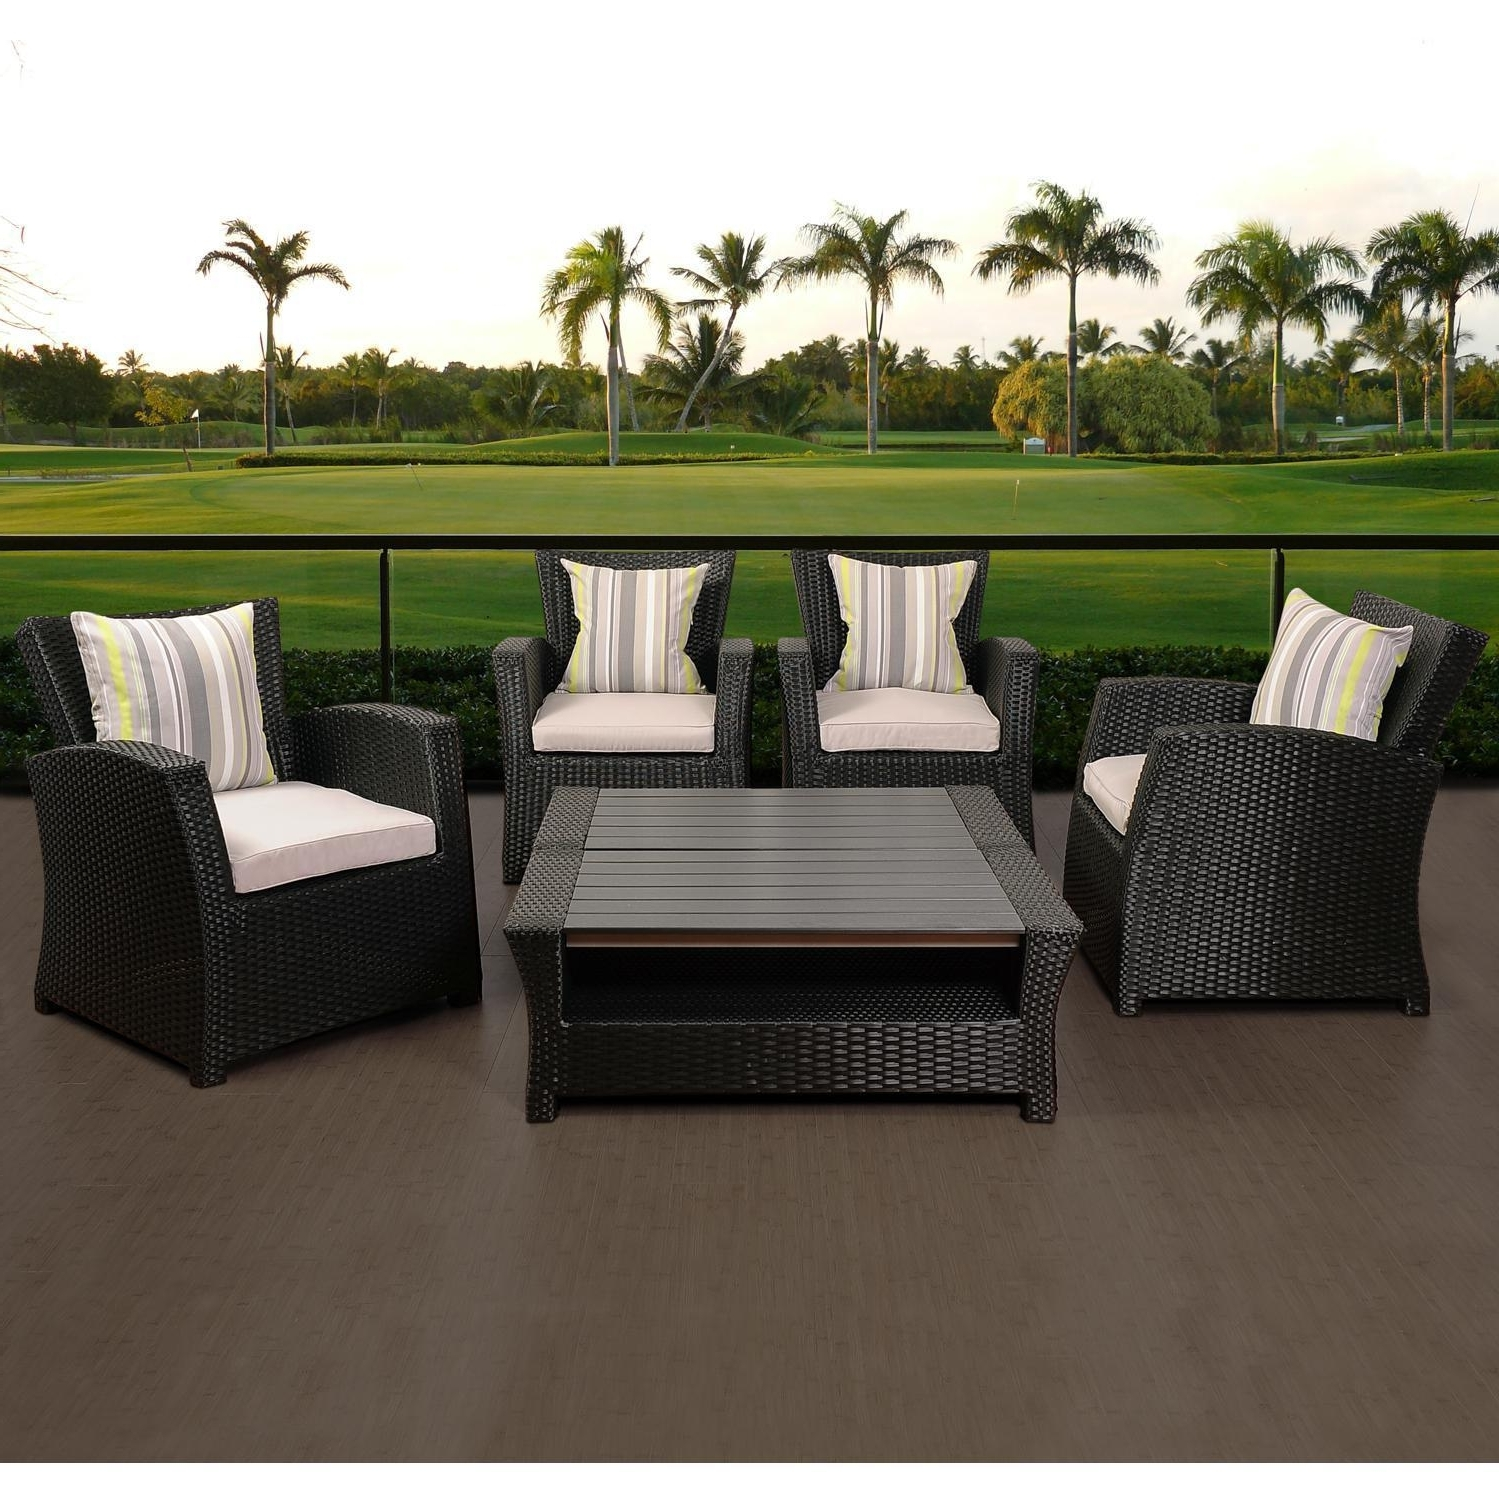 Well Known Resin Wicker Patio Conversation Sets Pertaining To Atlantic Staffordshire 4 Person Resin Wicker Patio Conversation Set – Black (View 14 of 15)